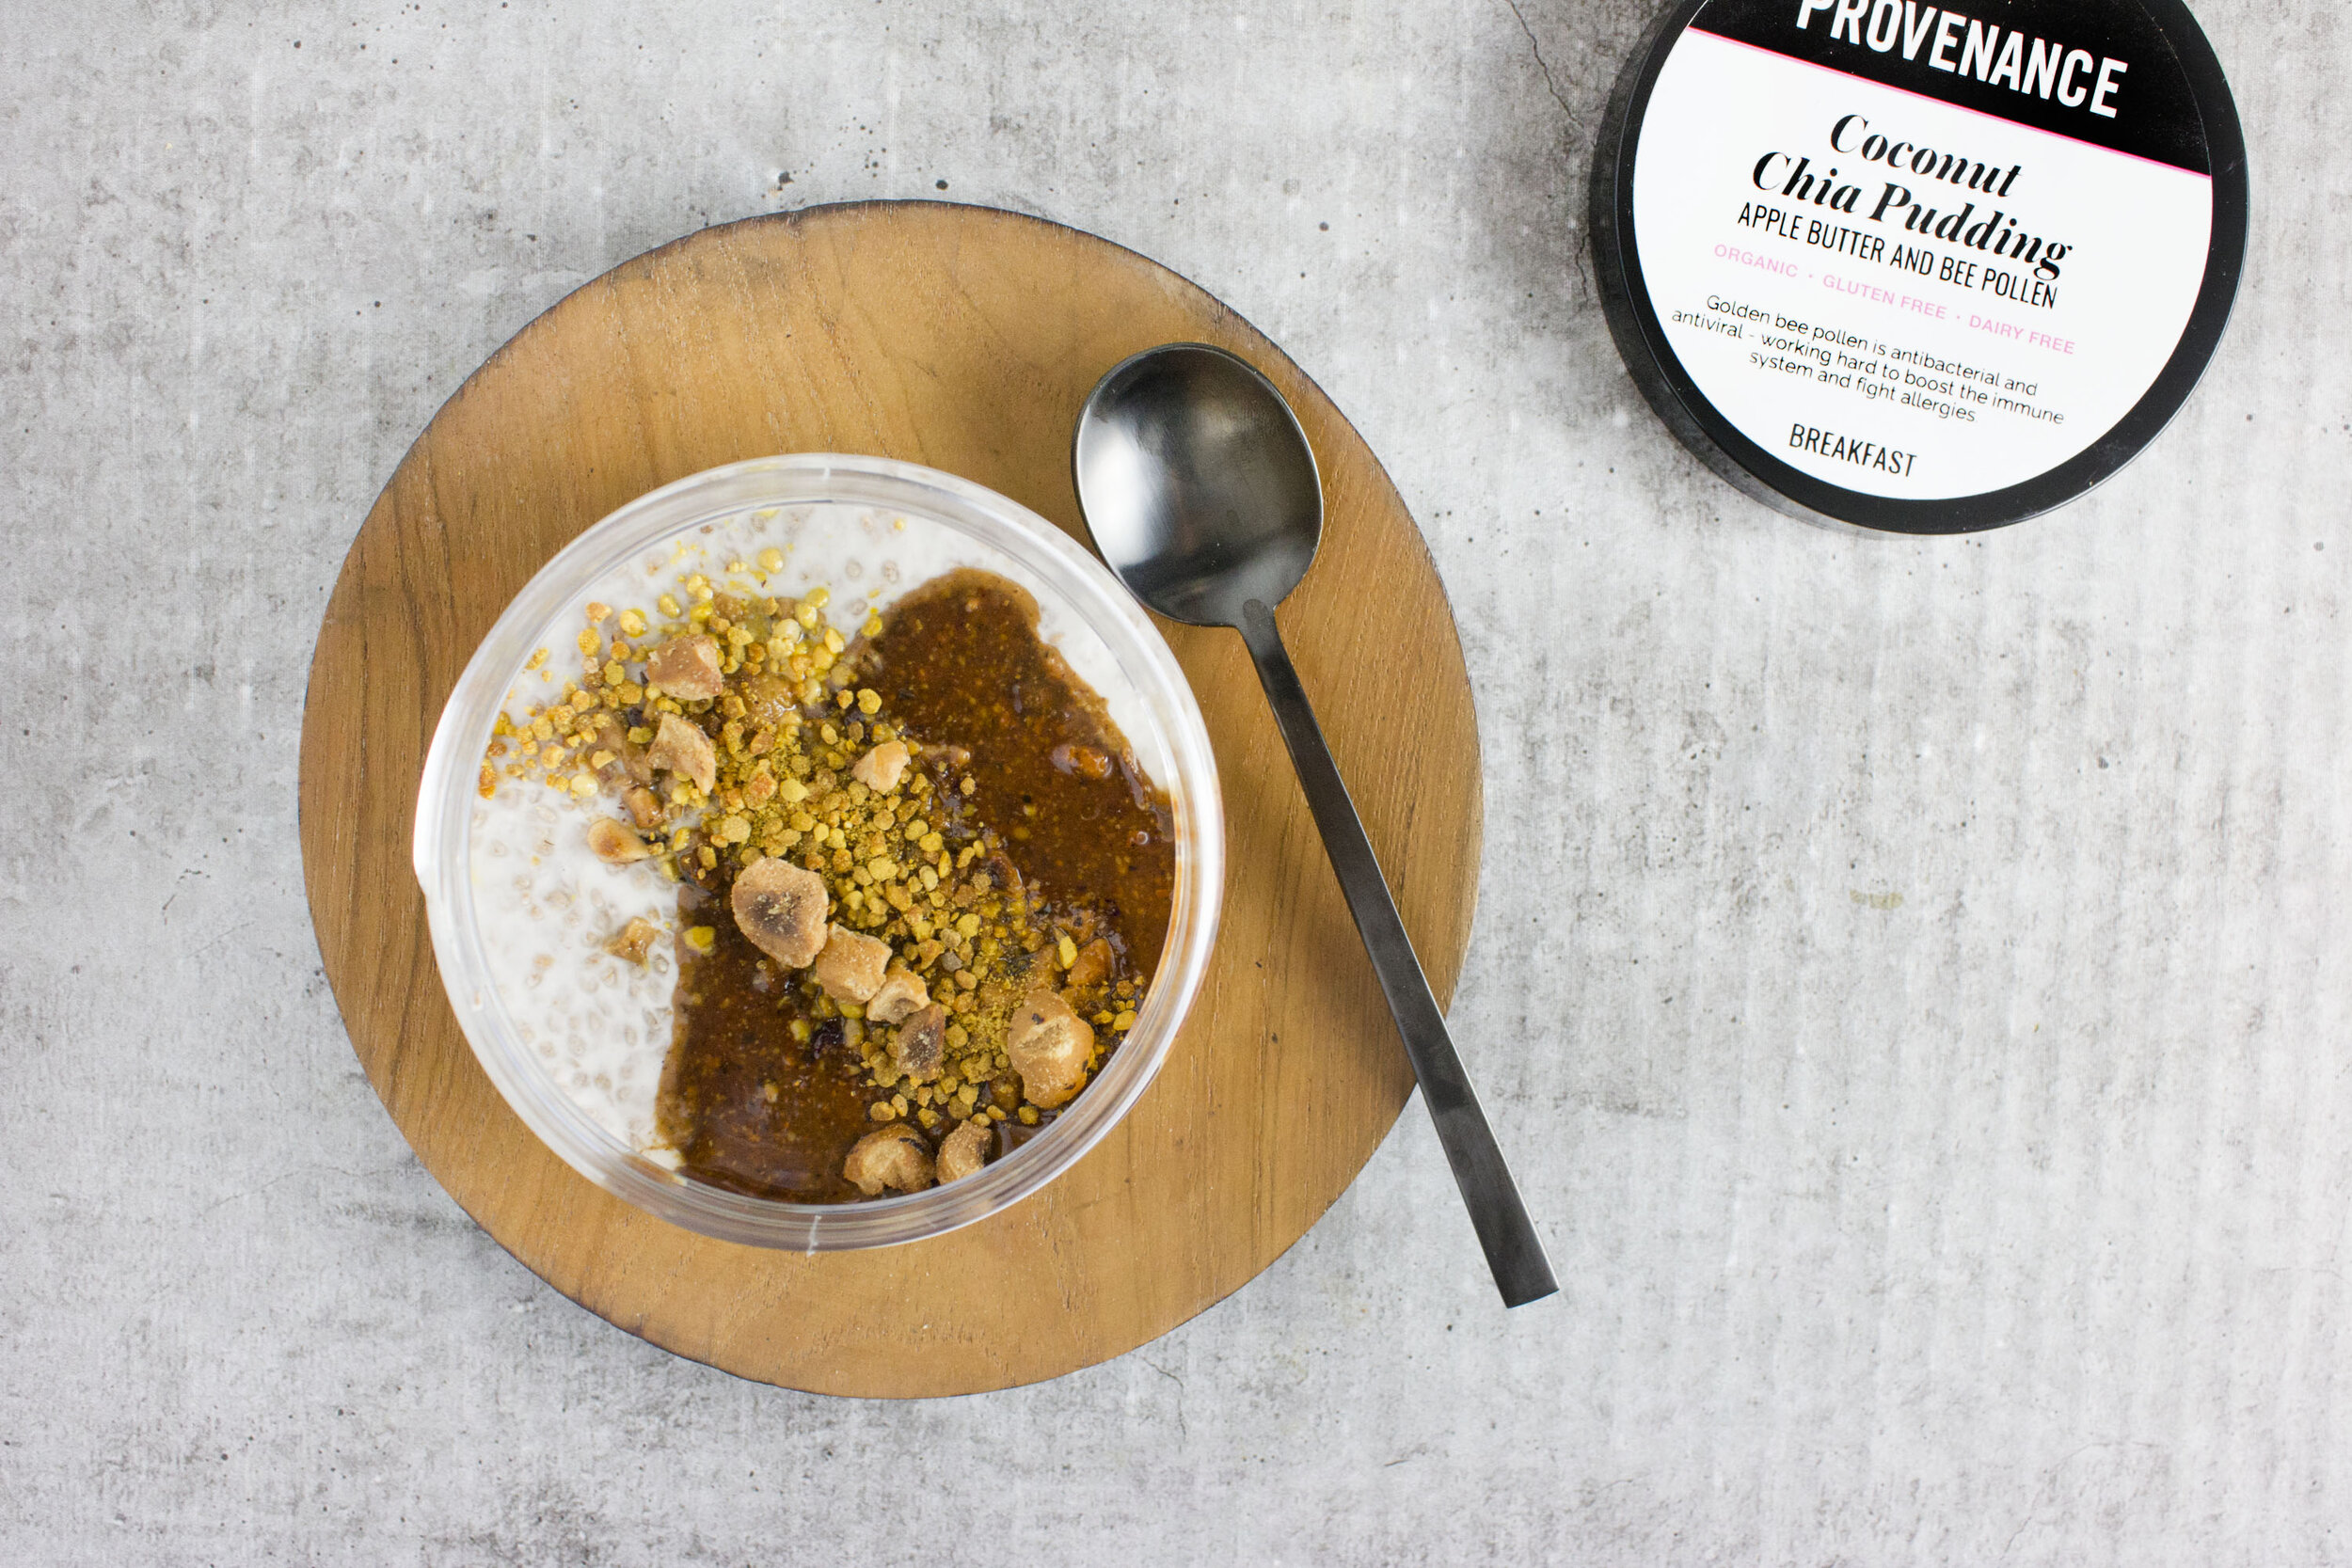 Breakfast: Coconut Chia Pudding with Apple Butter and Bee Pollen